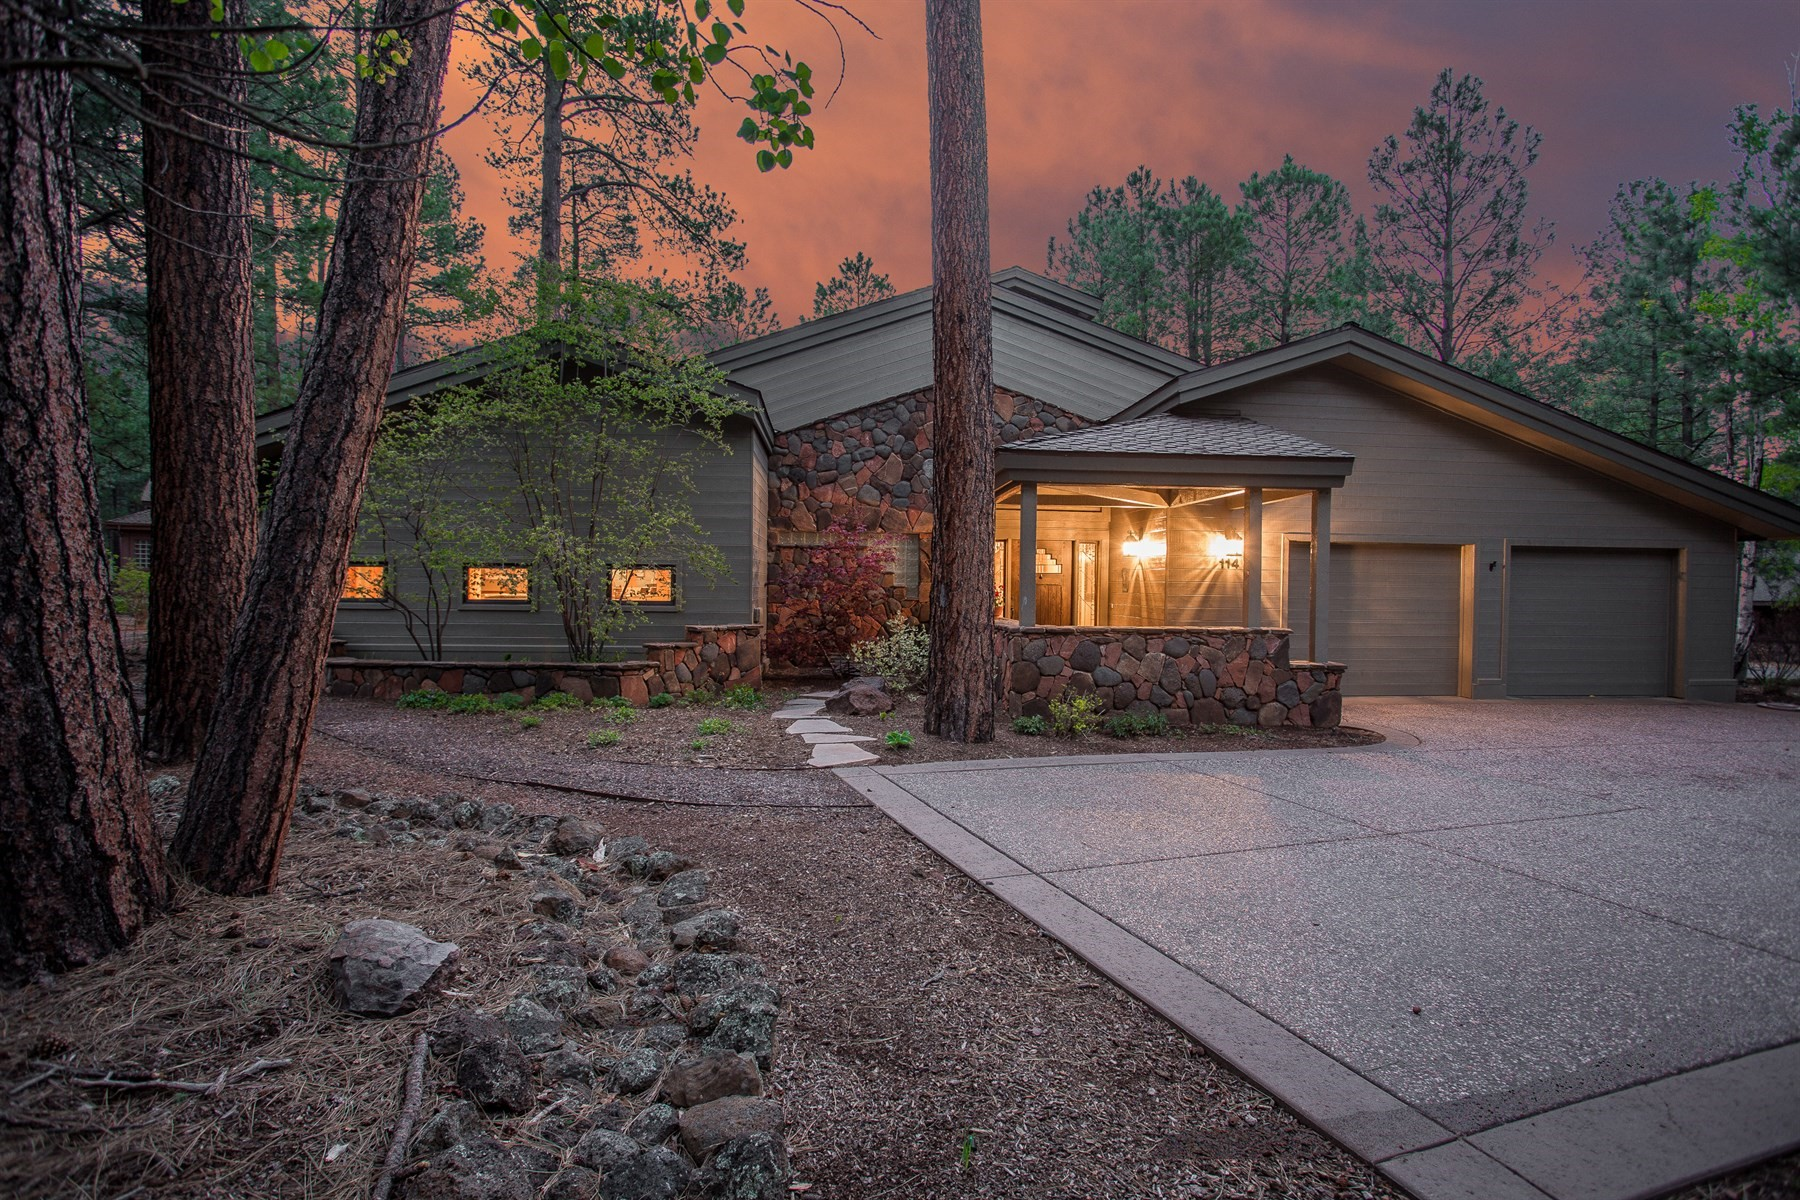 Single Family Home for Sale at Charming single level home in Forest Highlands 3787 Bear Howard Flagstaff, Arizona, 86005 United States